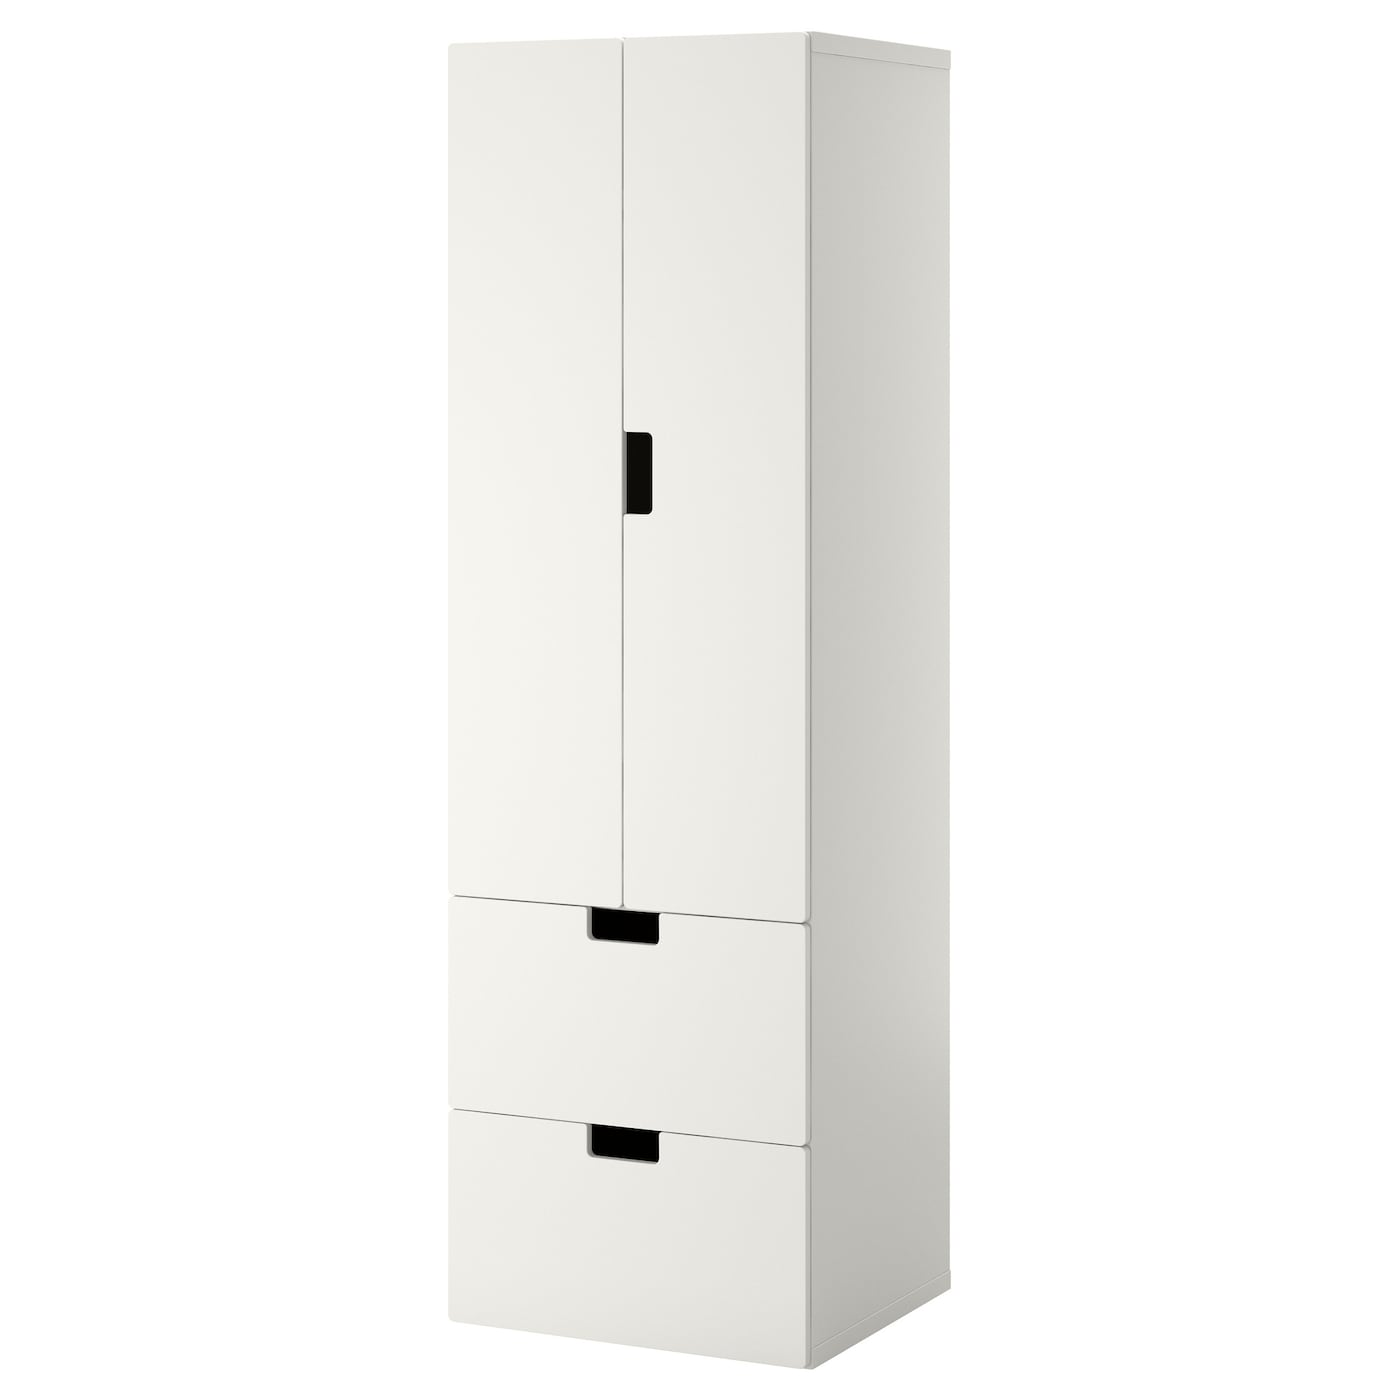 stuva storage combination w doors drawers white white 60x50x192 cm ikea. Black Bedroom Furniture Sets. Home Design Ideas